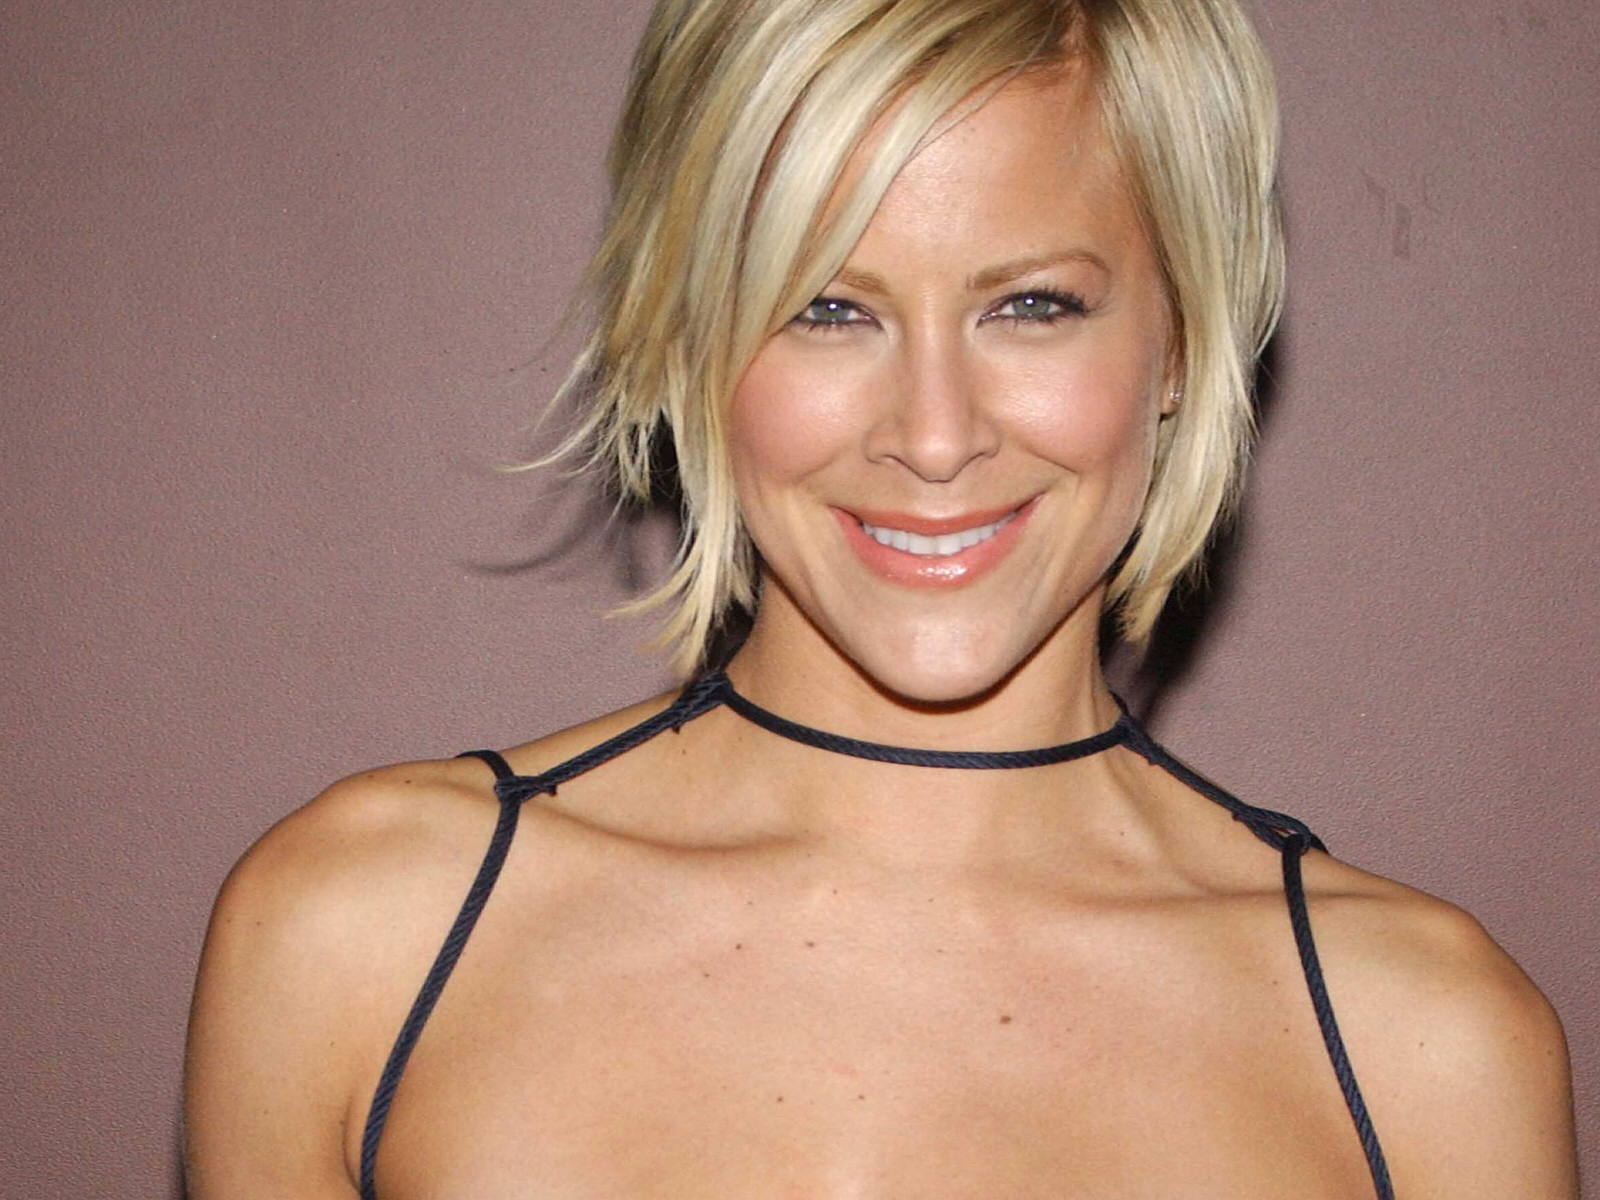 Brittany Daniel Hot Pictures  Photo Gallery  amp  WallpapersBrittany Daniel Movies